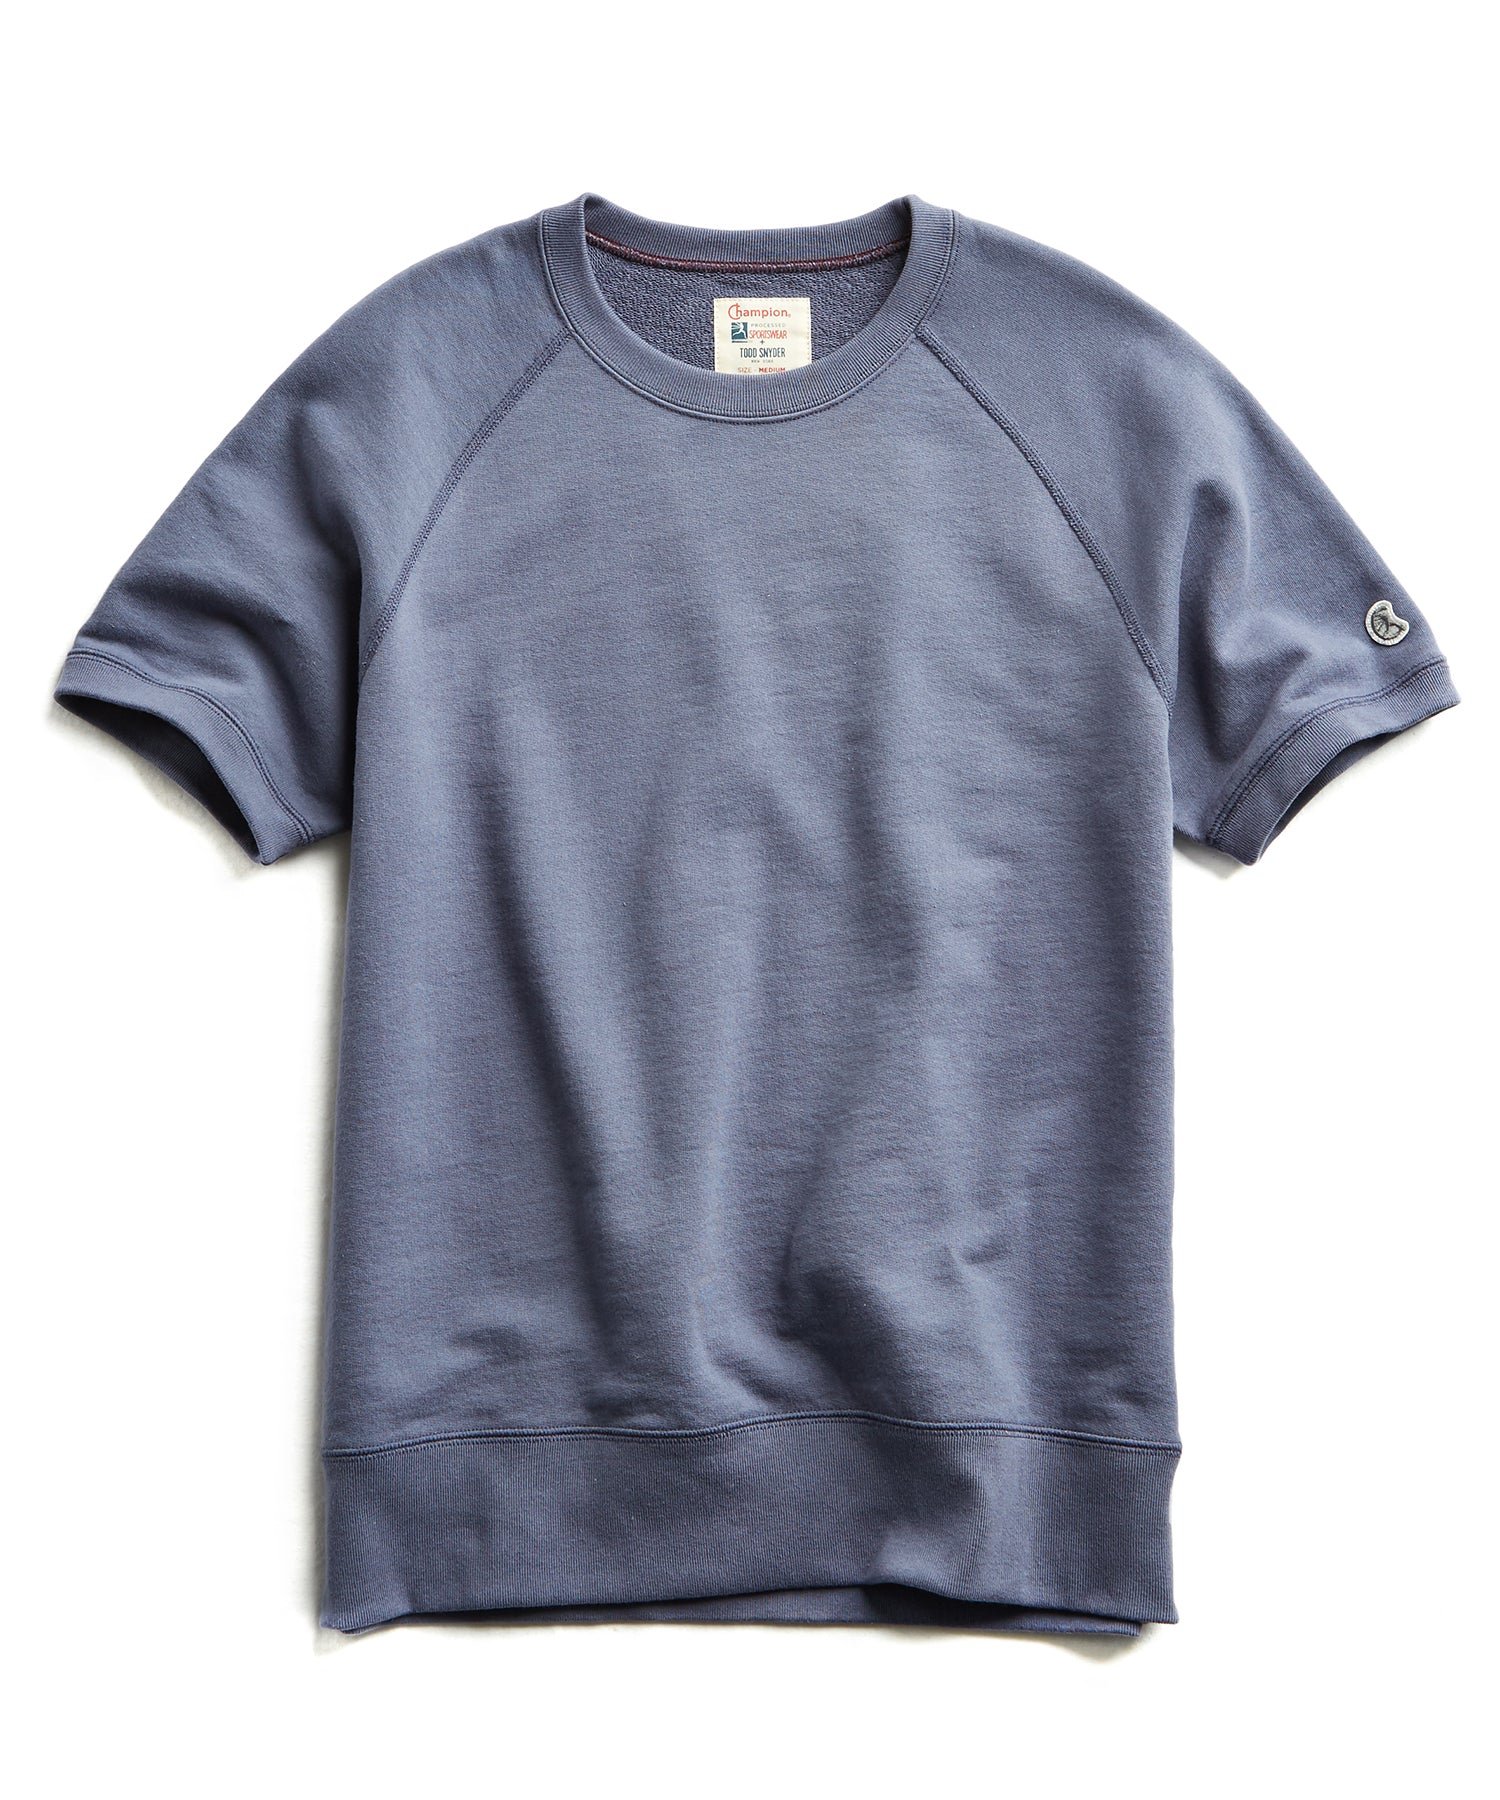 Terry Short Sleeve Sweatshirt in Vintage Grape